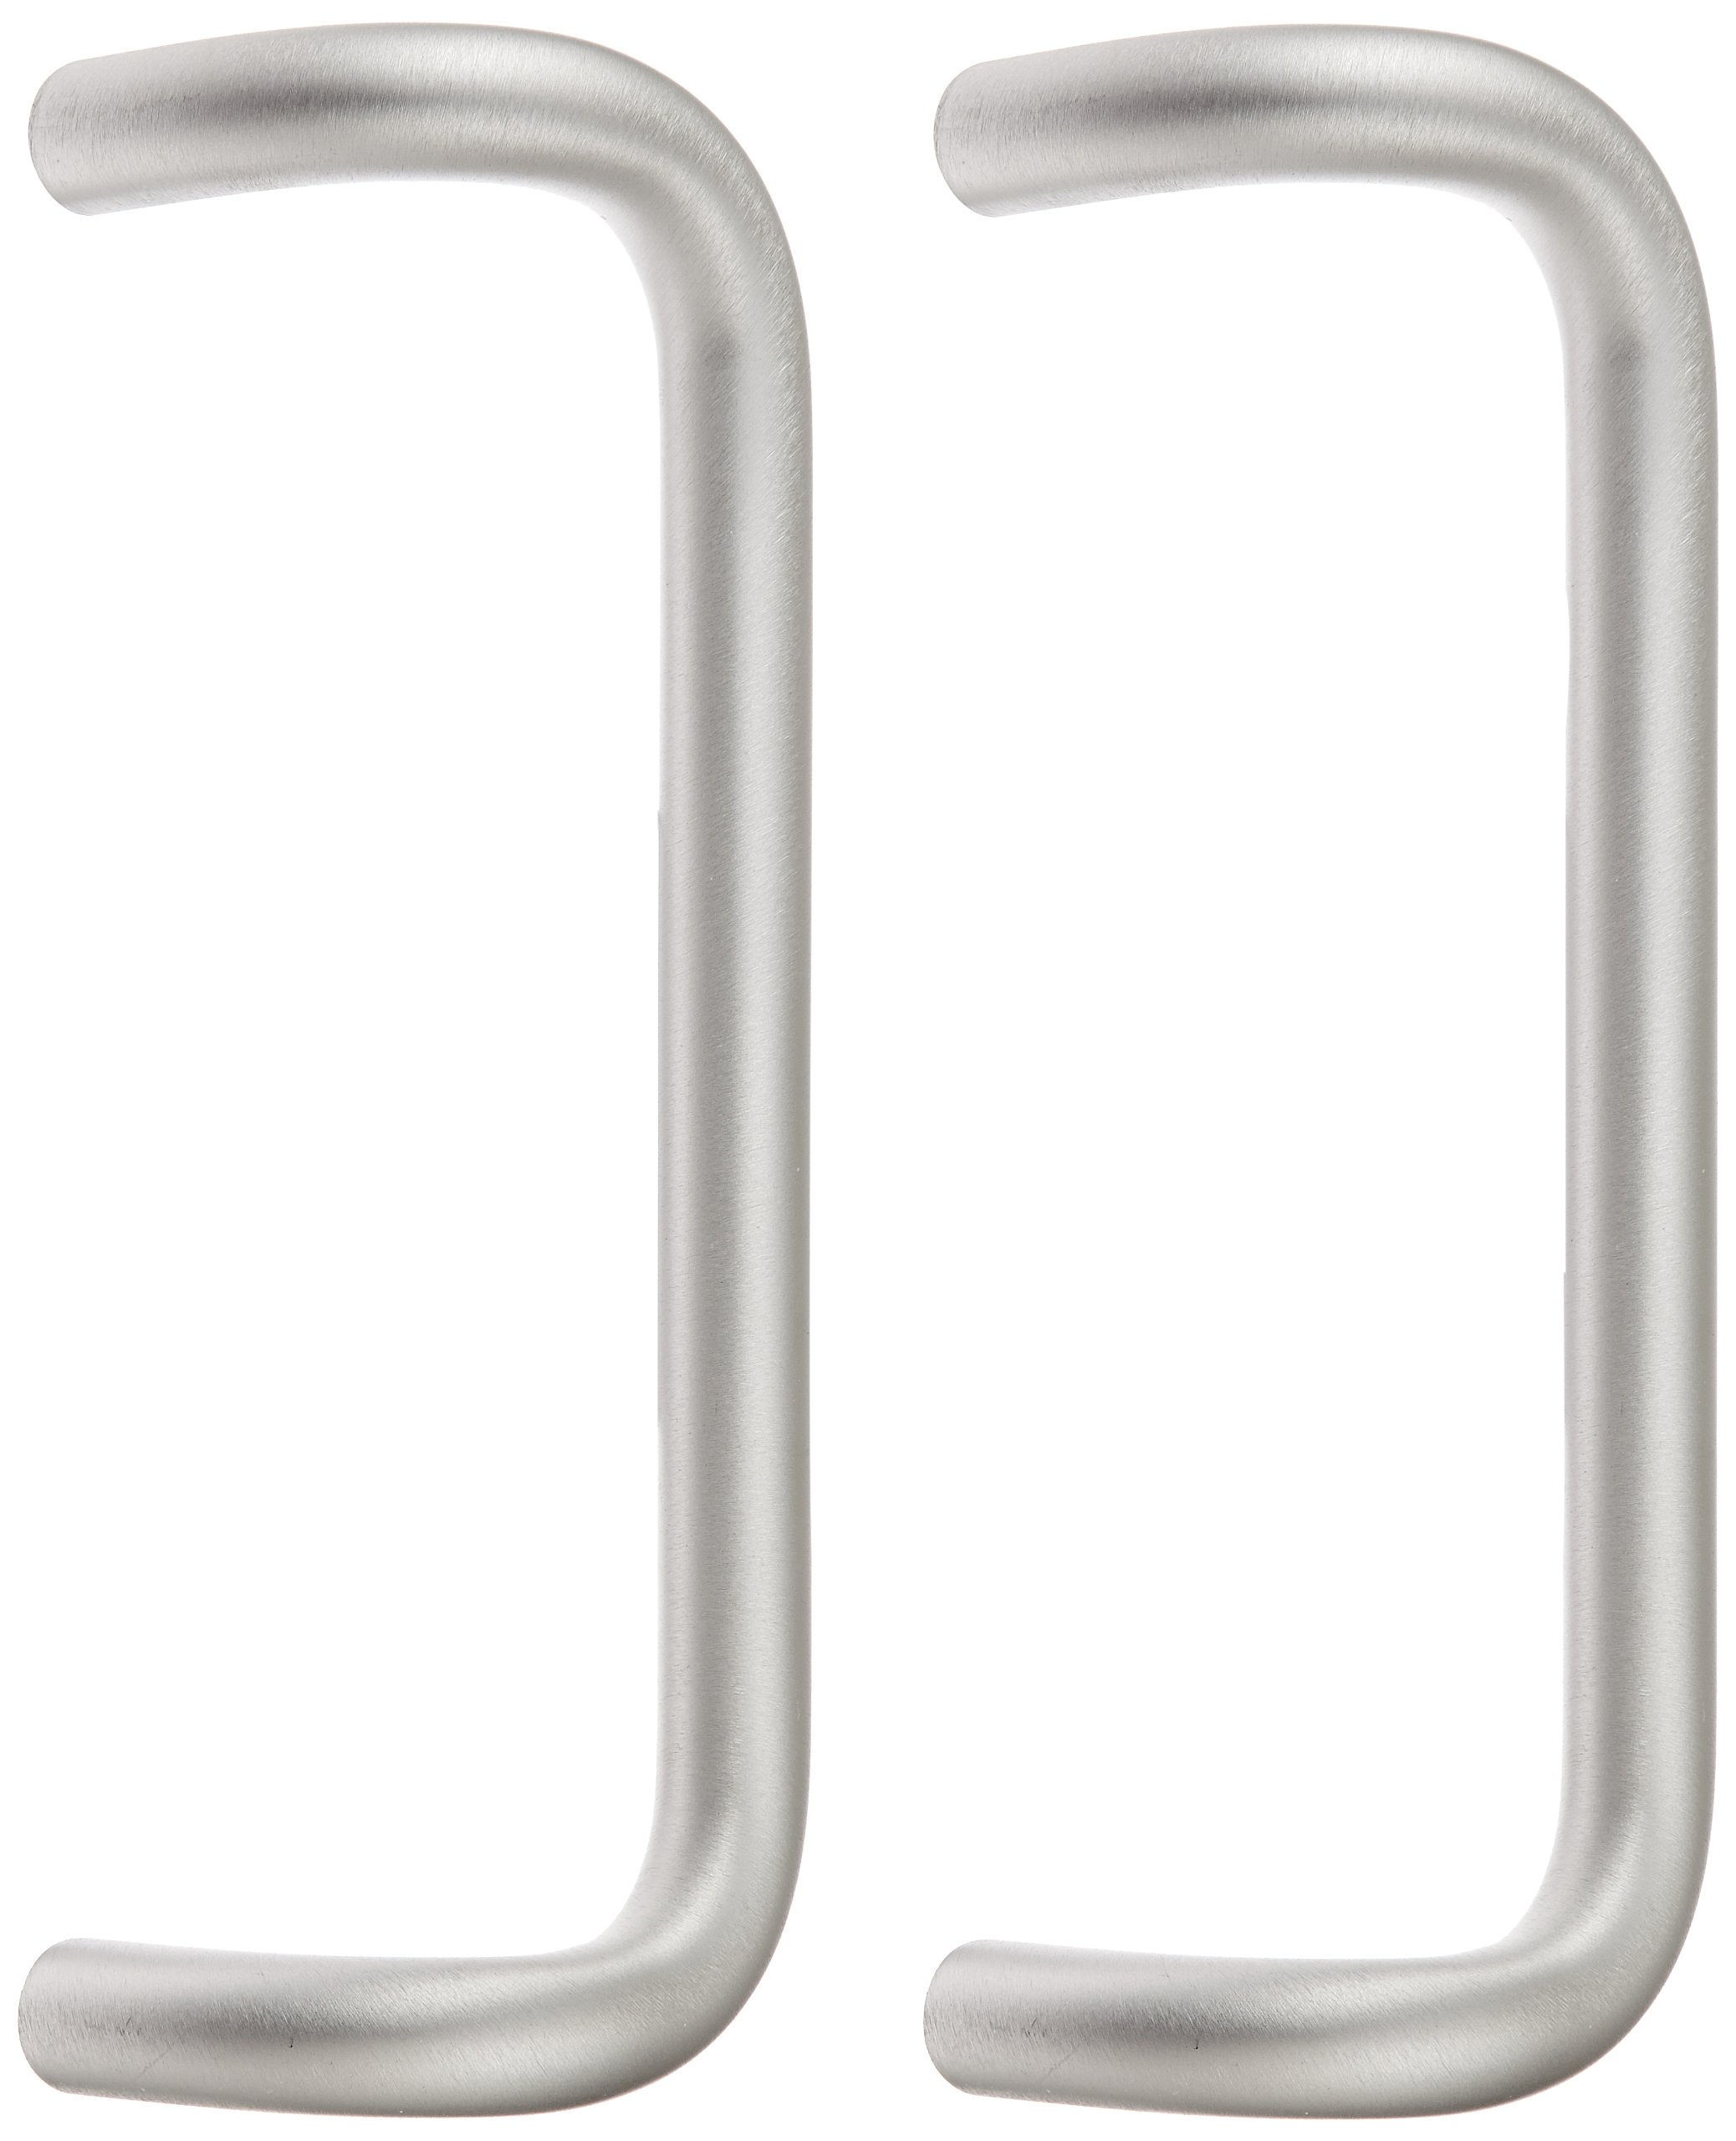 Rockwood BF158BTB16.28 Aluminum 90-Degree Offset Door Pull, 1'' Diameter x 12'' Center-to-Center, Back To Back Mounting for 1-3/4'' Door, Clear Anodized Finish